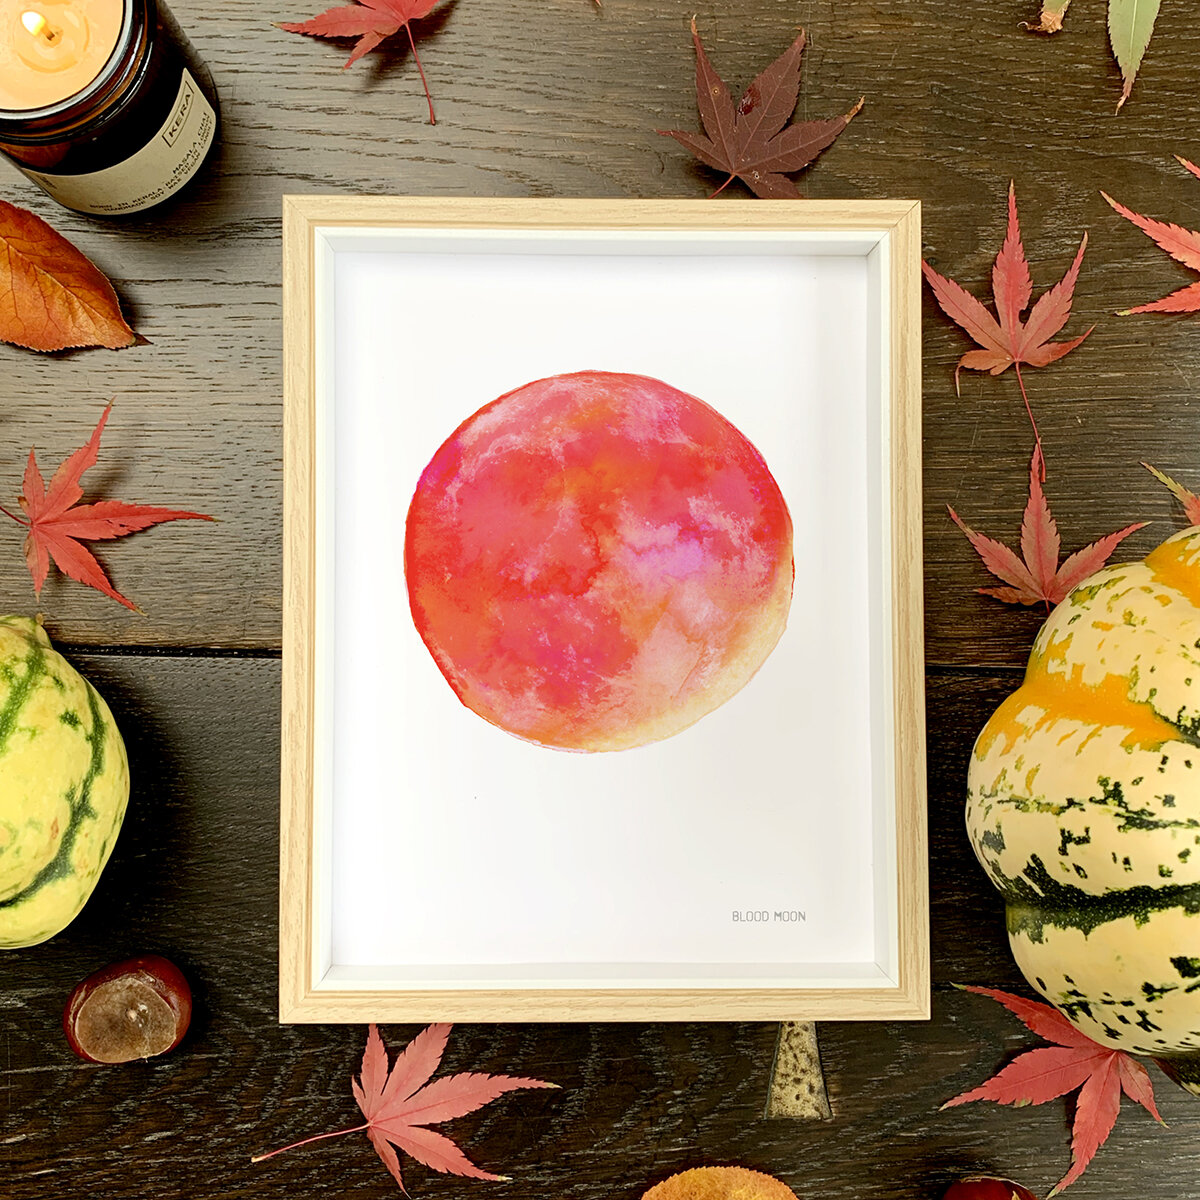 Blood Moon Print in A5 Frame with Autumn Leaf and  Candle  and pumpkins copy.jpg